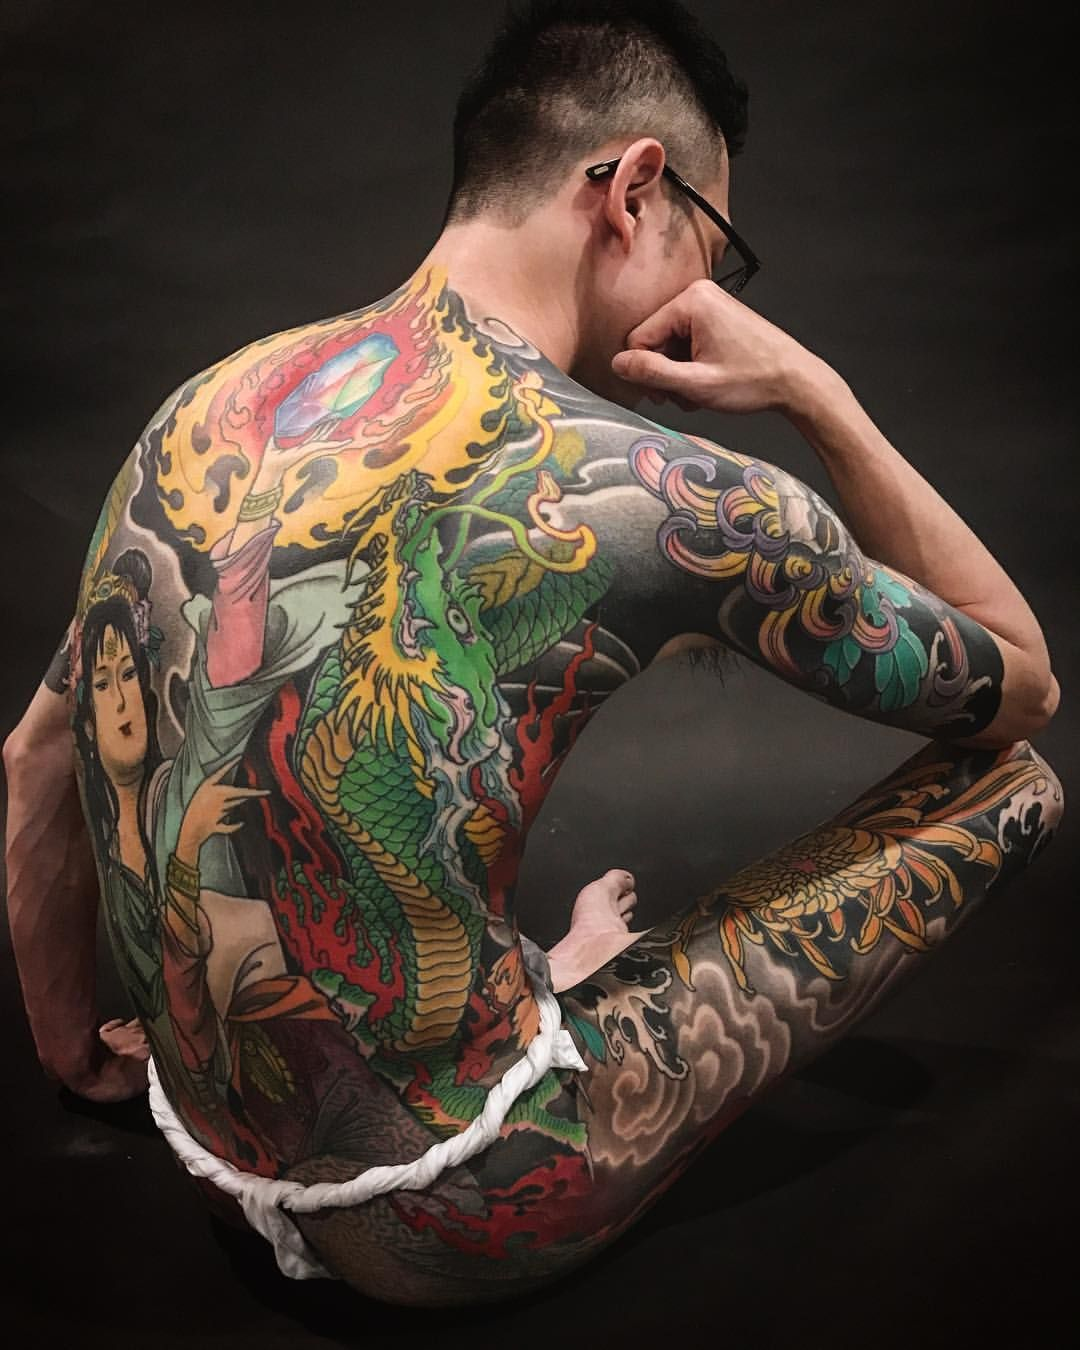 2017 tattoo by Diau botaiwantattoo diauboart